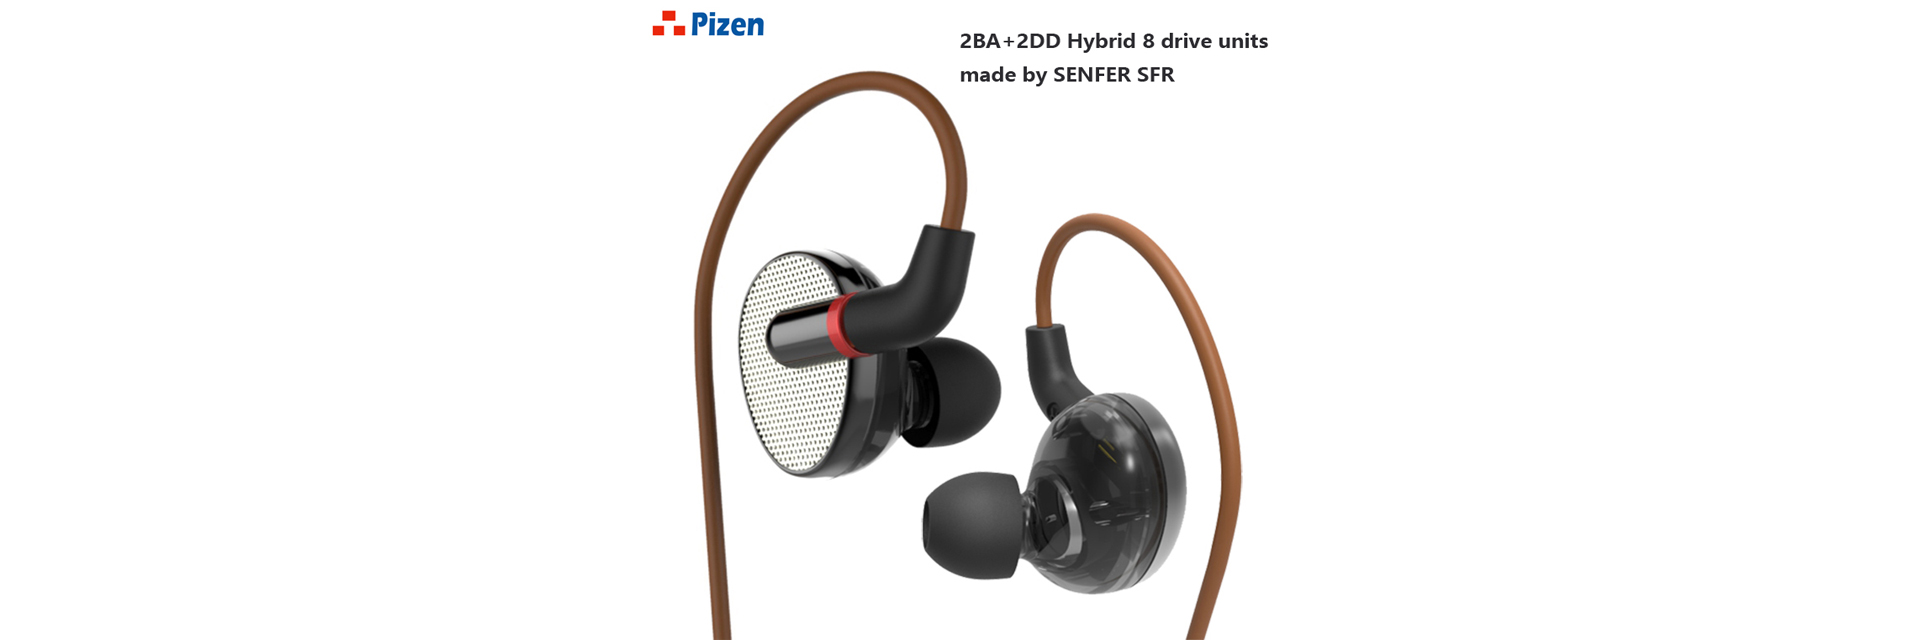 Pizen Store Small Orders Online Hot Selling And More On Sennheiser High End In Ear Earphone Ie 800 New Technology 2018 Senfer Dt6 Earburd Piezoelectric Armature Dynamic For Ie80 Ie800 Cable Headset Ue